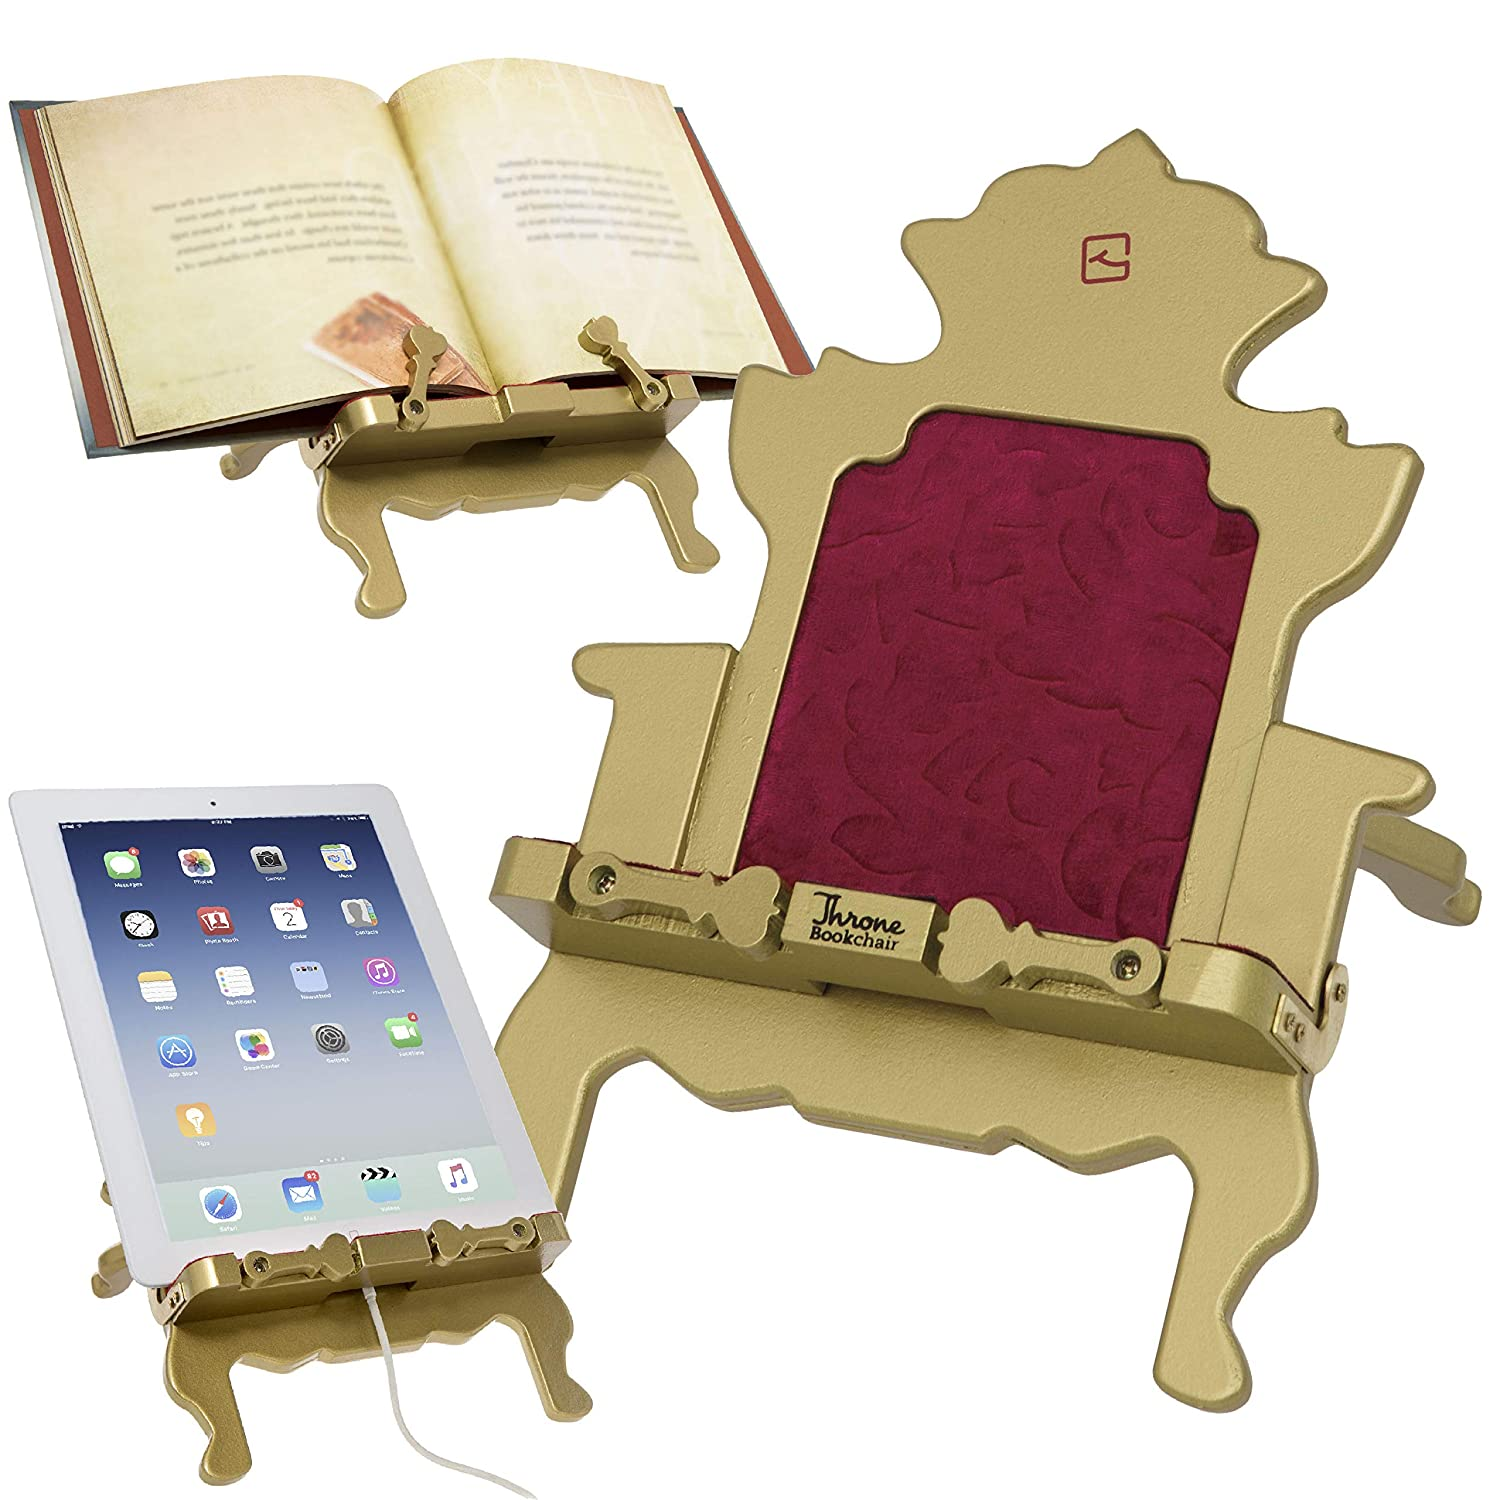 iPad Reading Rest & Book Holder. Adjustable Stand for Tablet, eReader or Cookbook. Great Christmas or Birthday Gift for Home, Bedroom or Office - Gold Thinking Gifts